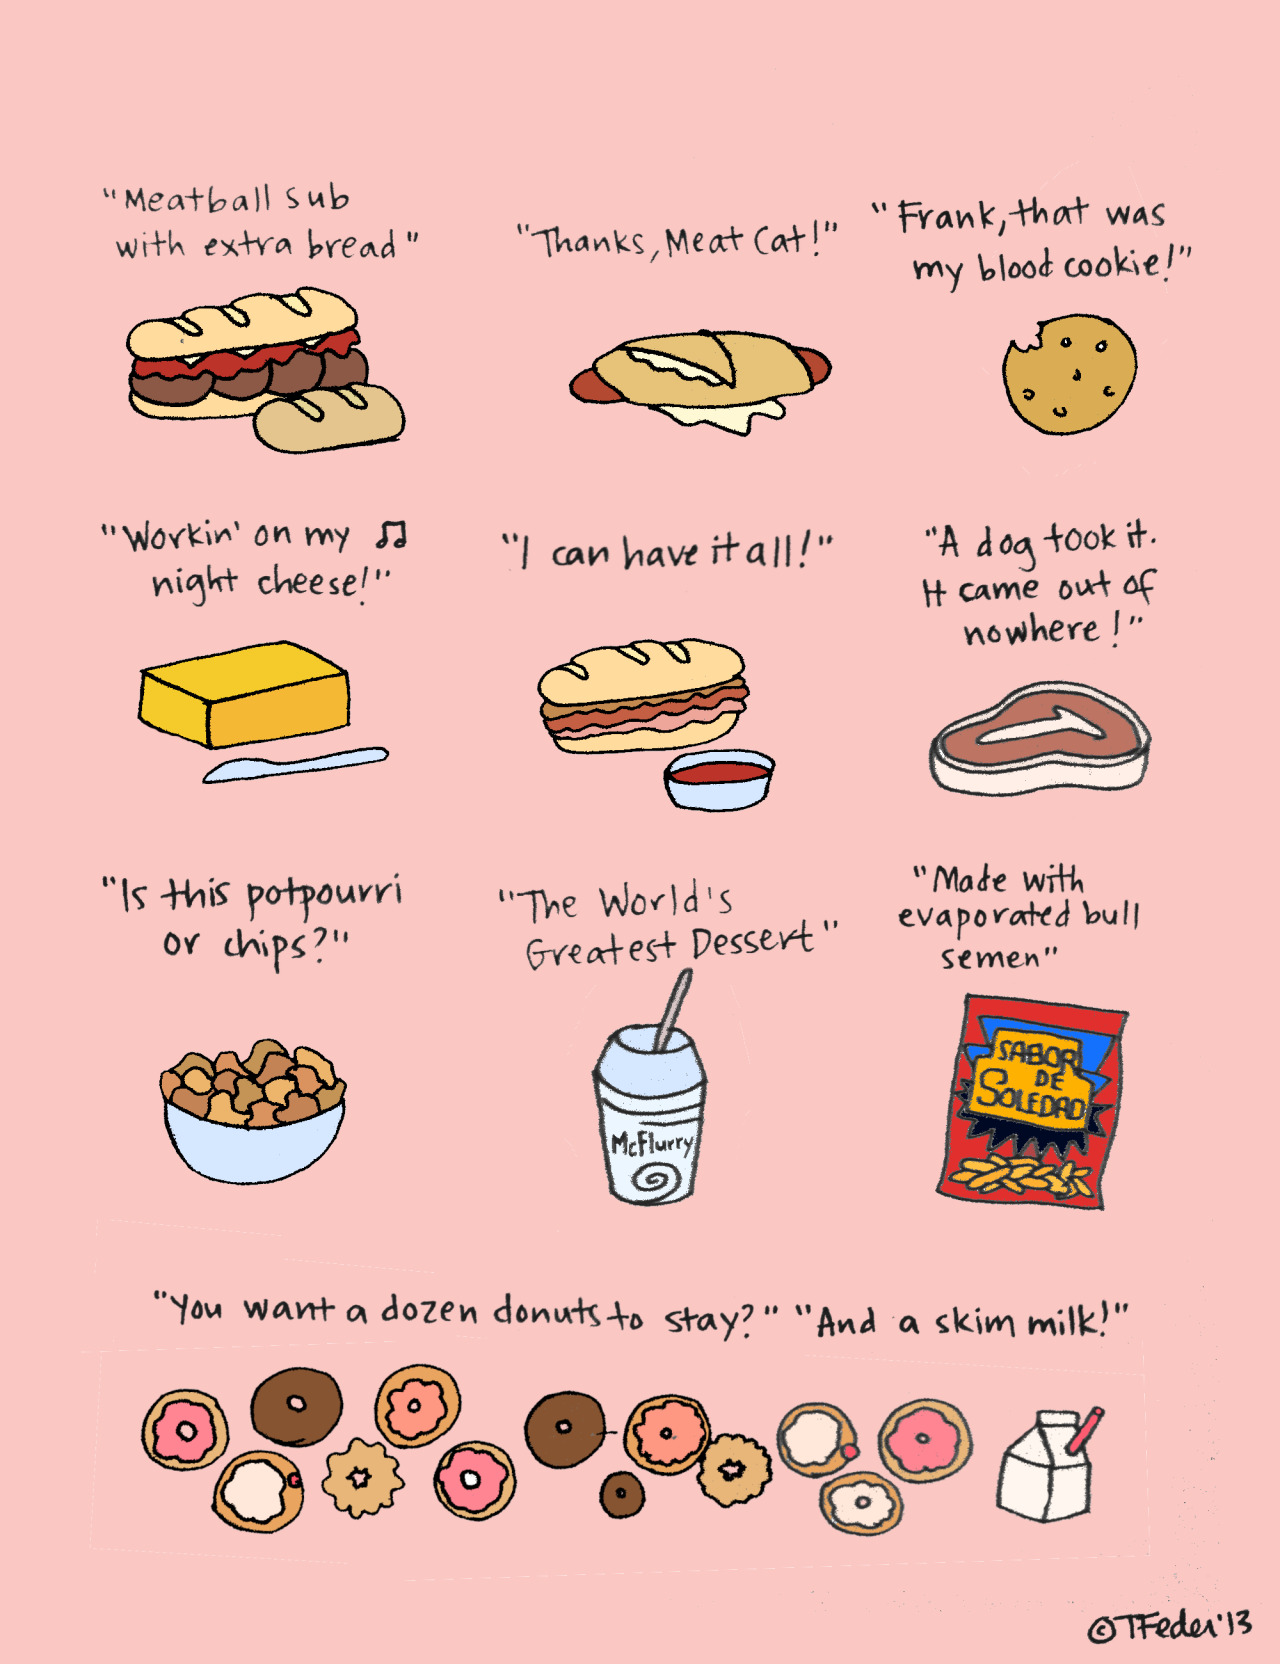 Some Foods of 30 Rock (by Tyler Feder)